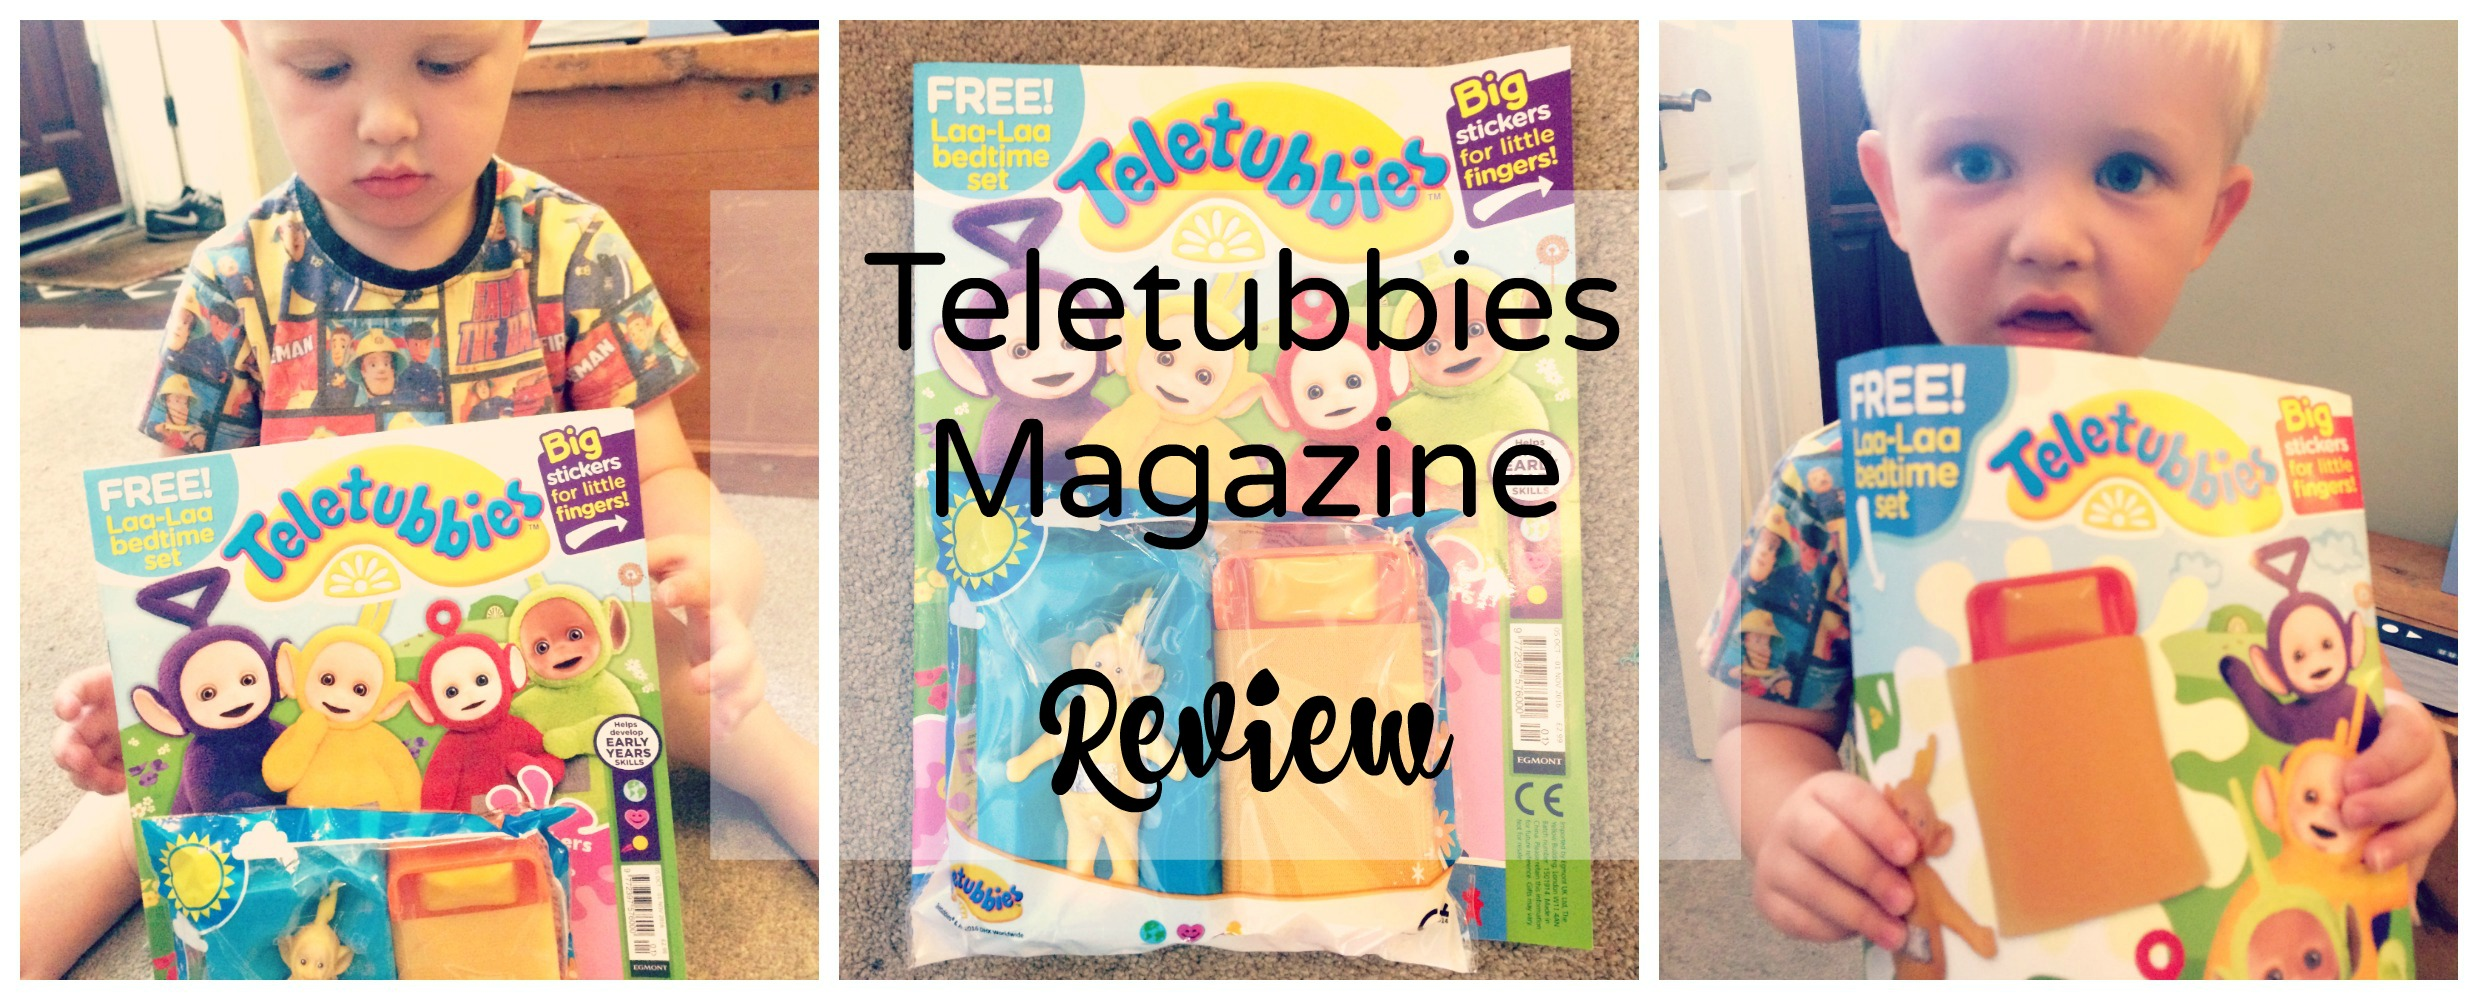 Teletubbies review surreal and sinister telegraph - Teletubbies Review Surreal And Sinister Telegraph Teletubbies Review Surreal And Sinister Telegraph Teletubbies Review Surreal